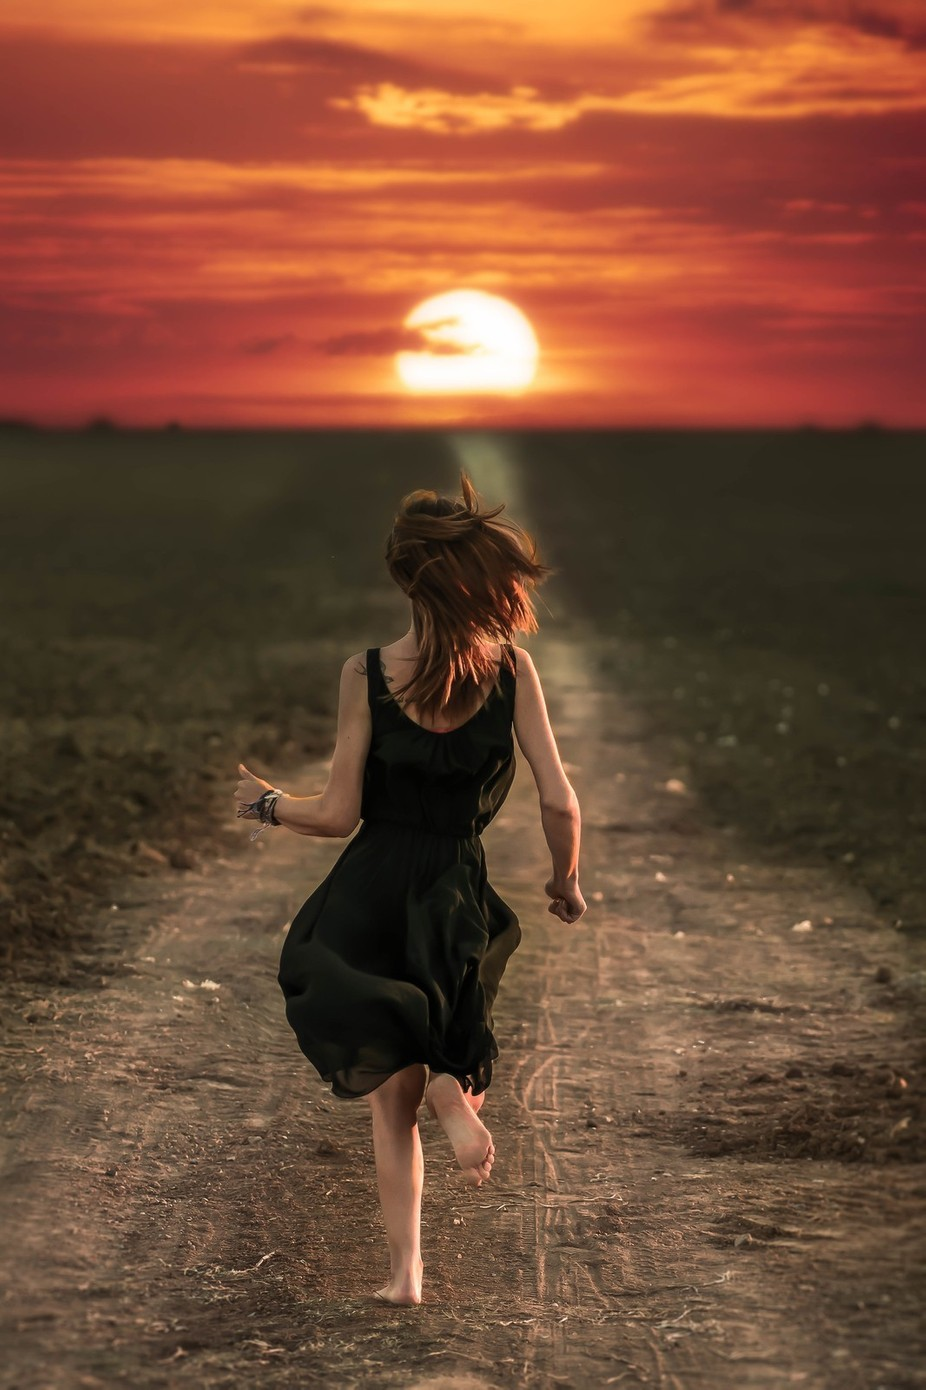 Run Away To The Sun. by Florianpascual - Image of the Year Photo Contest by Snapfish